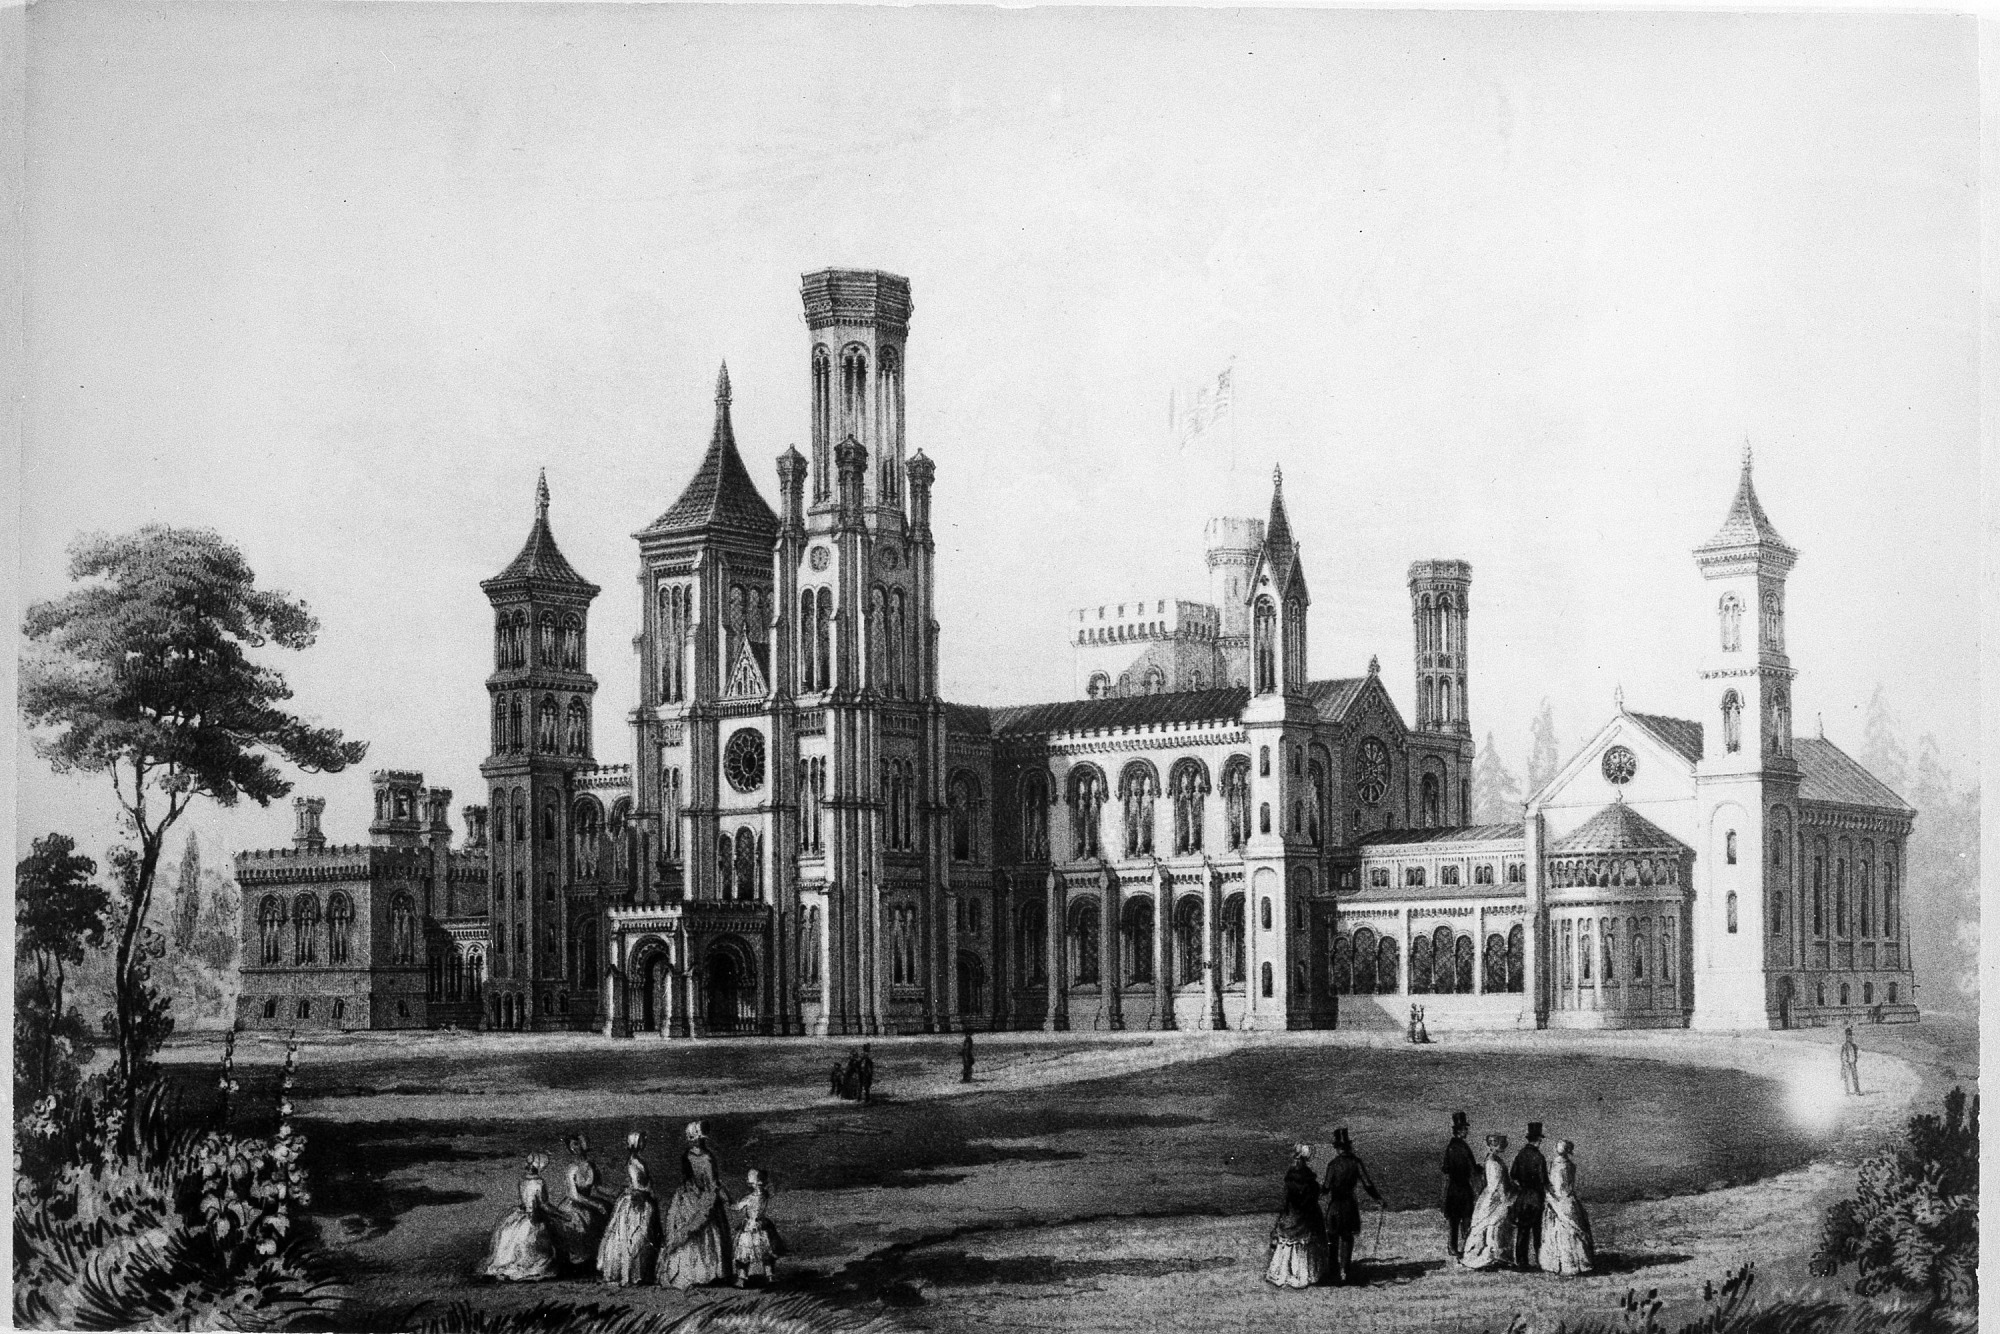 Exterior of Smithsonian Building Completed, December 31, 1851, Smithsonian Archives - History Div.